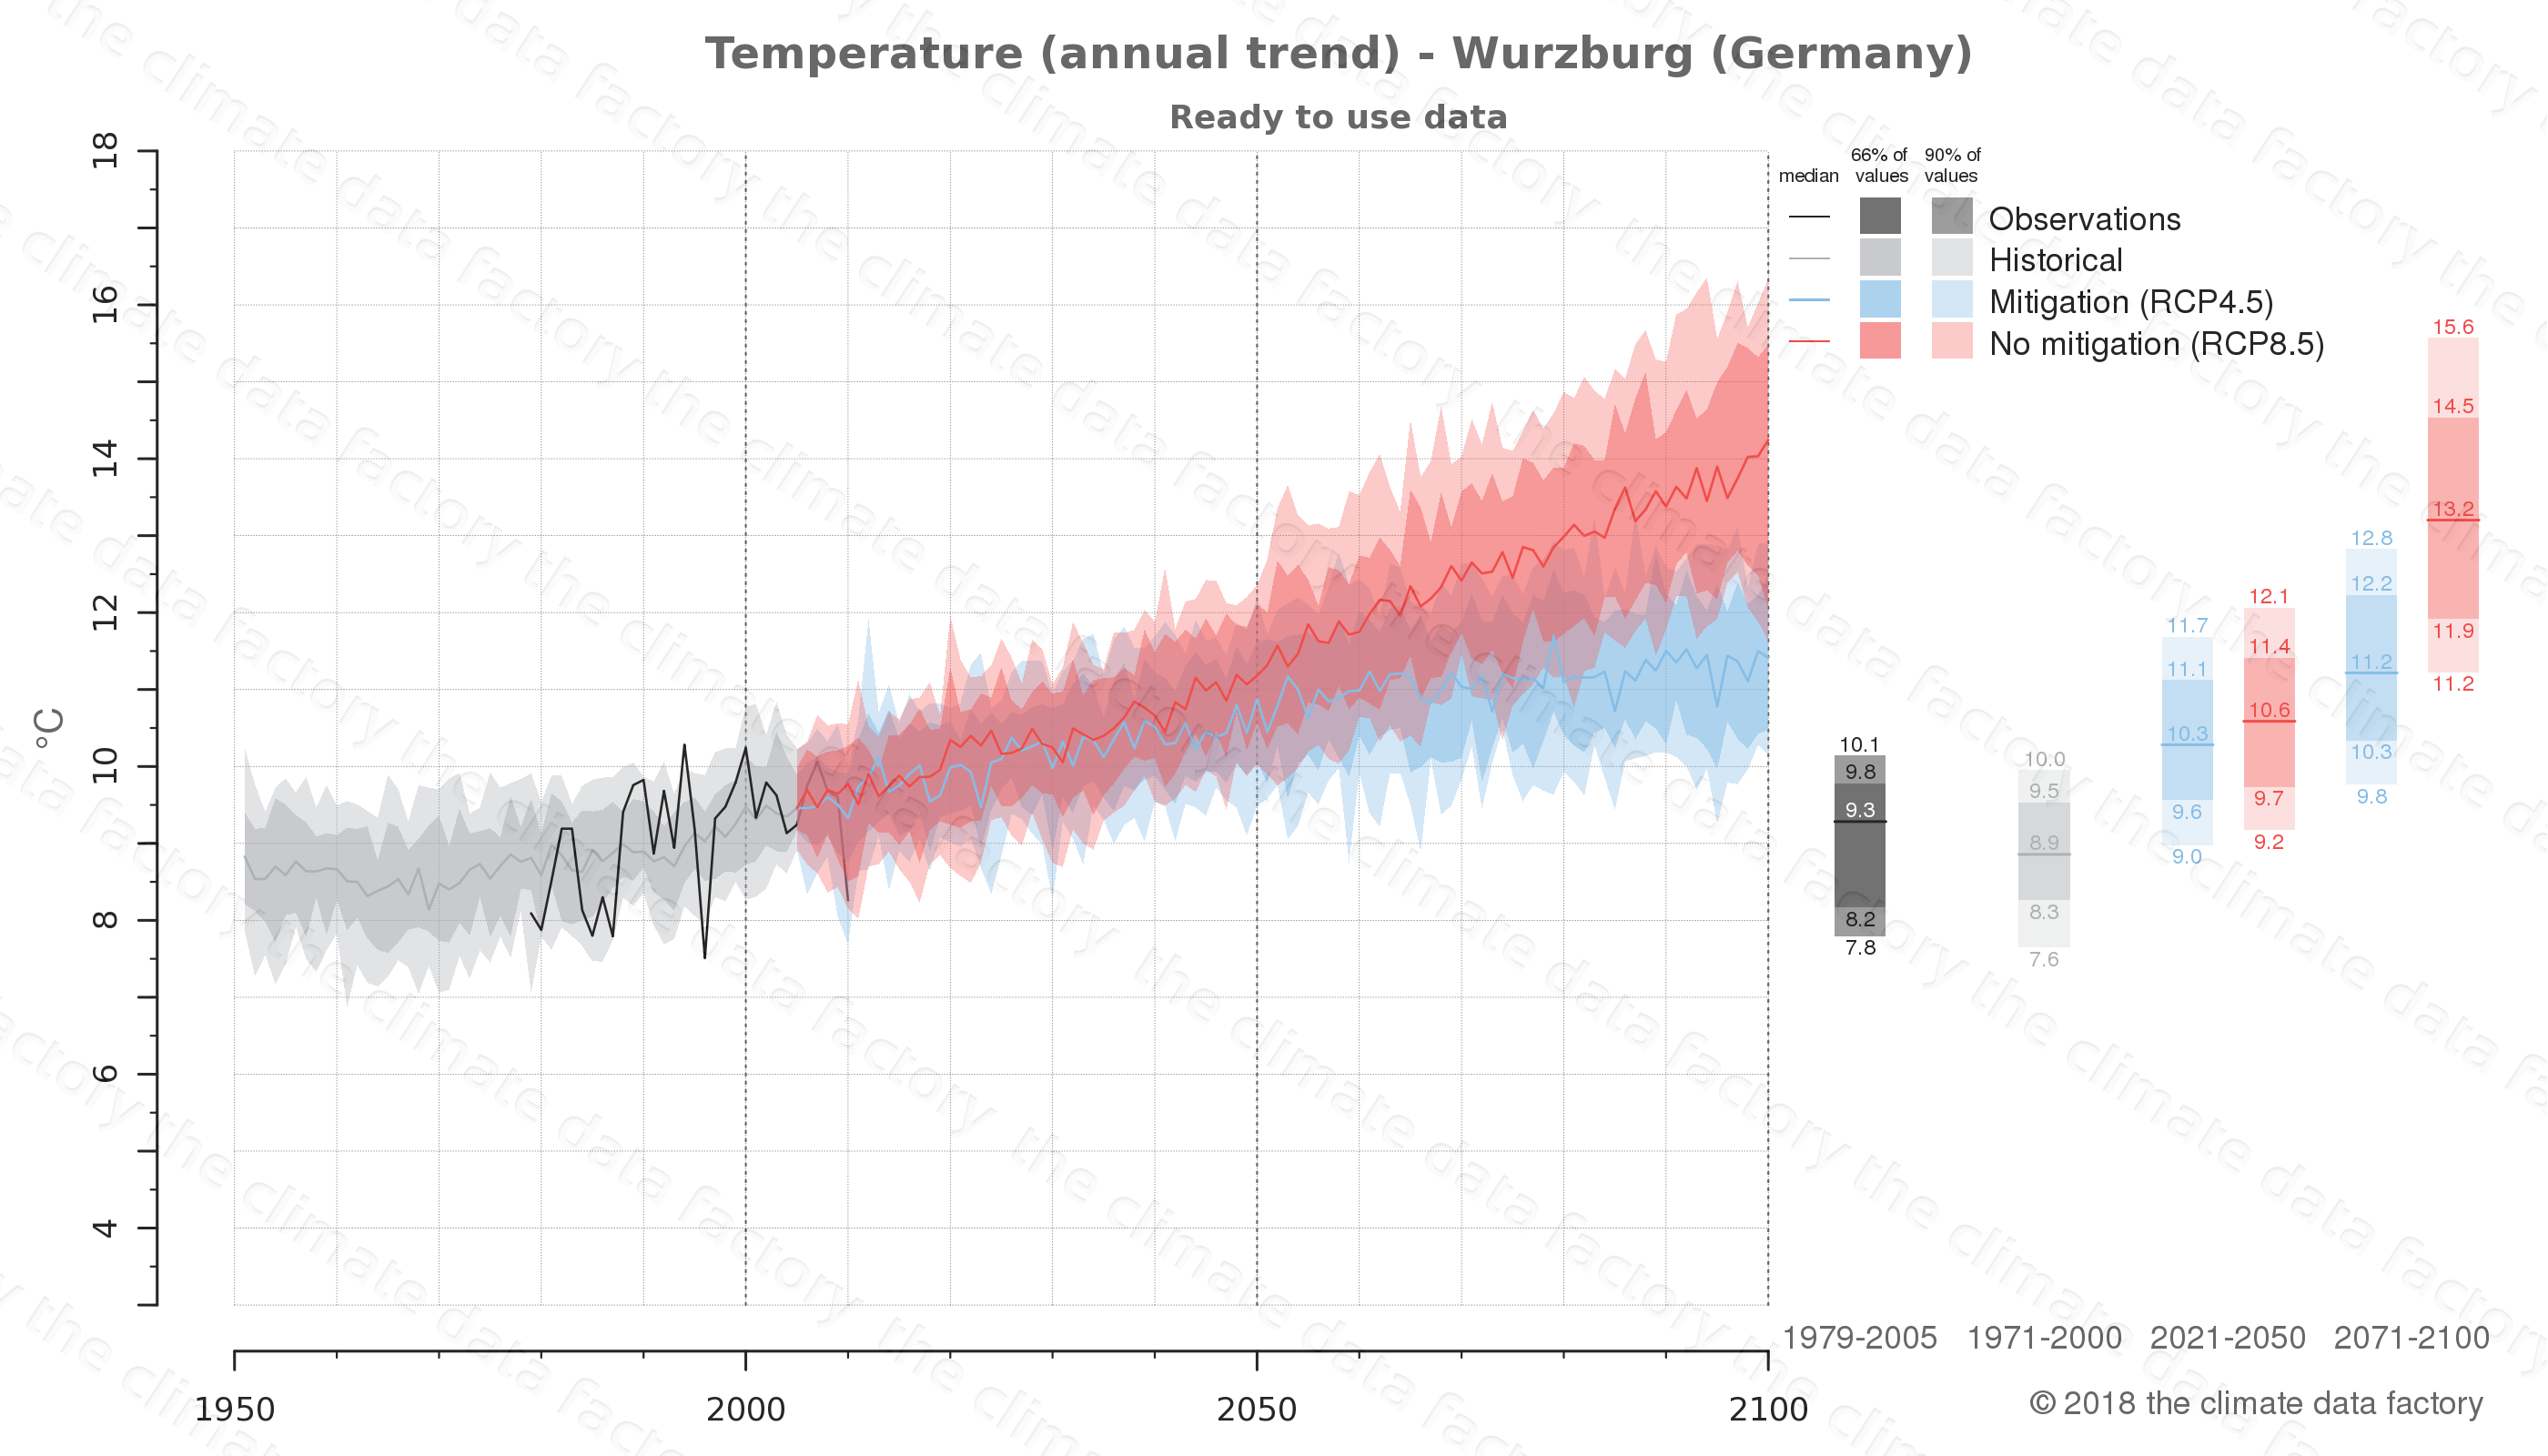 climate change data policy adaptation climate graph city data temperature wurzburg germany